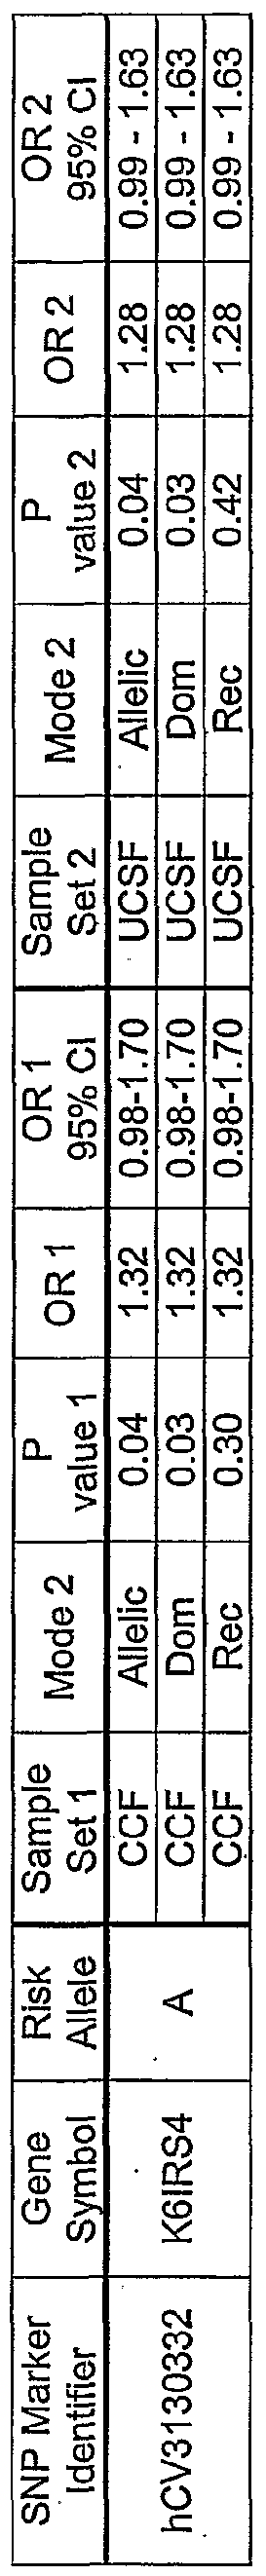 WO2006099365A9 - Genetic polymorphisms associated with coronary